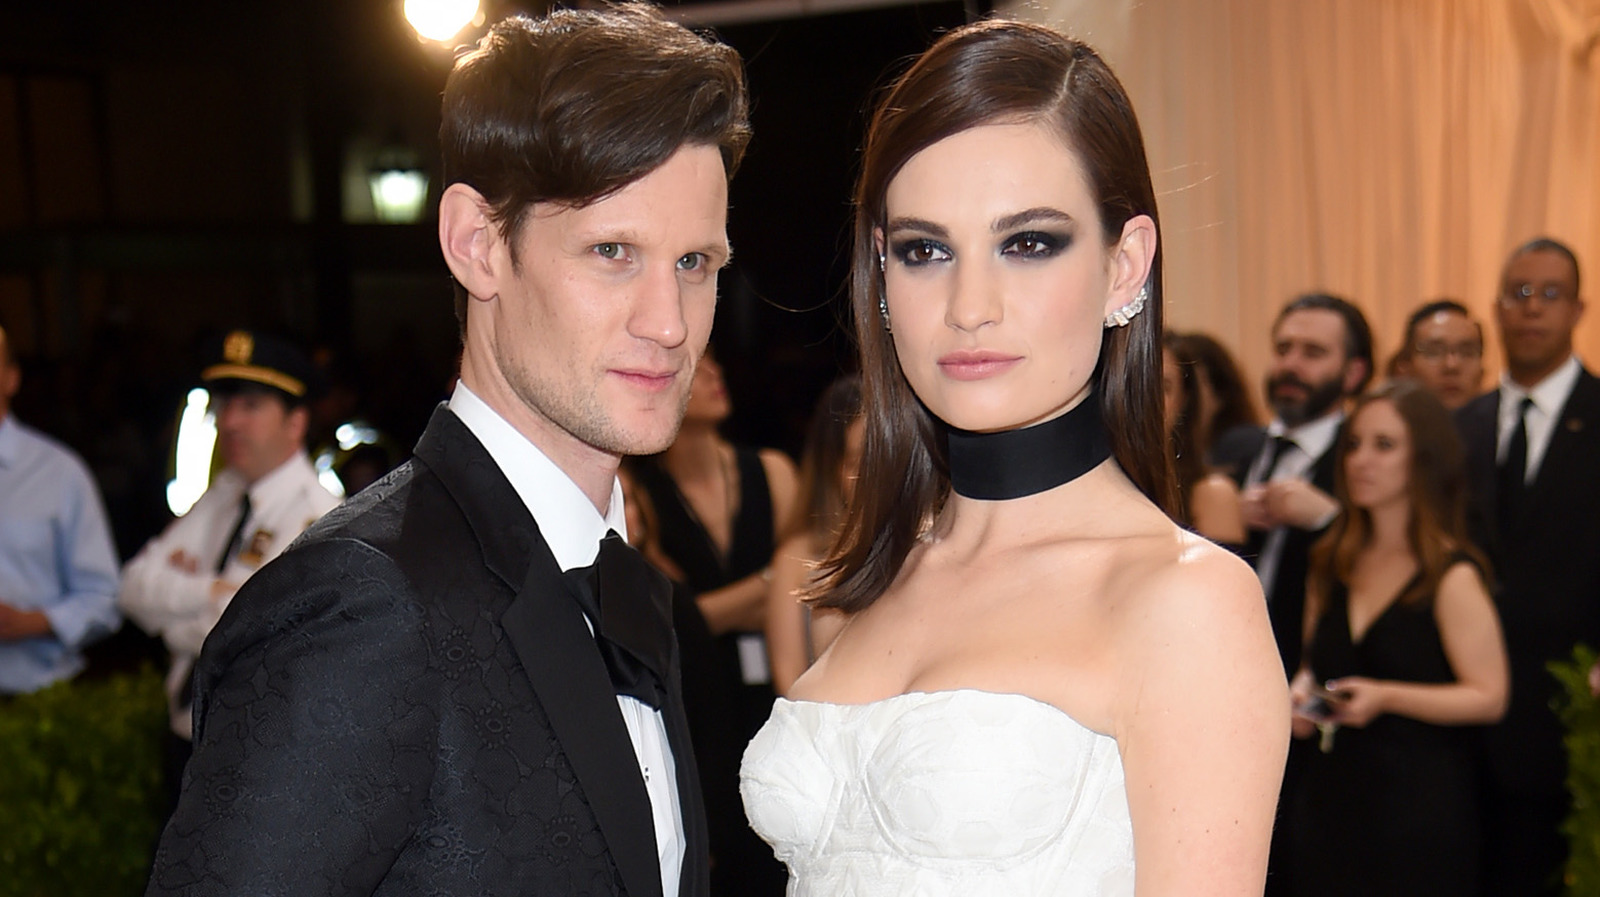 Married lily james What did